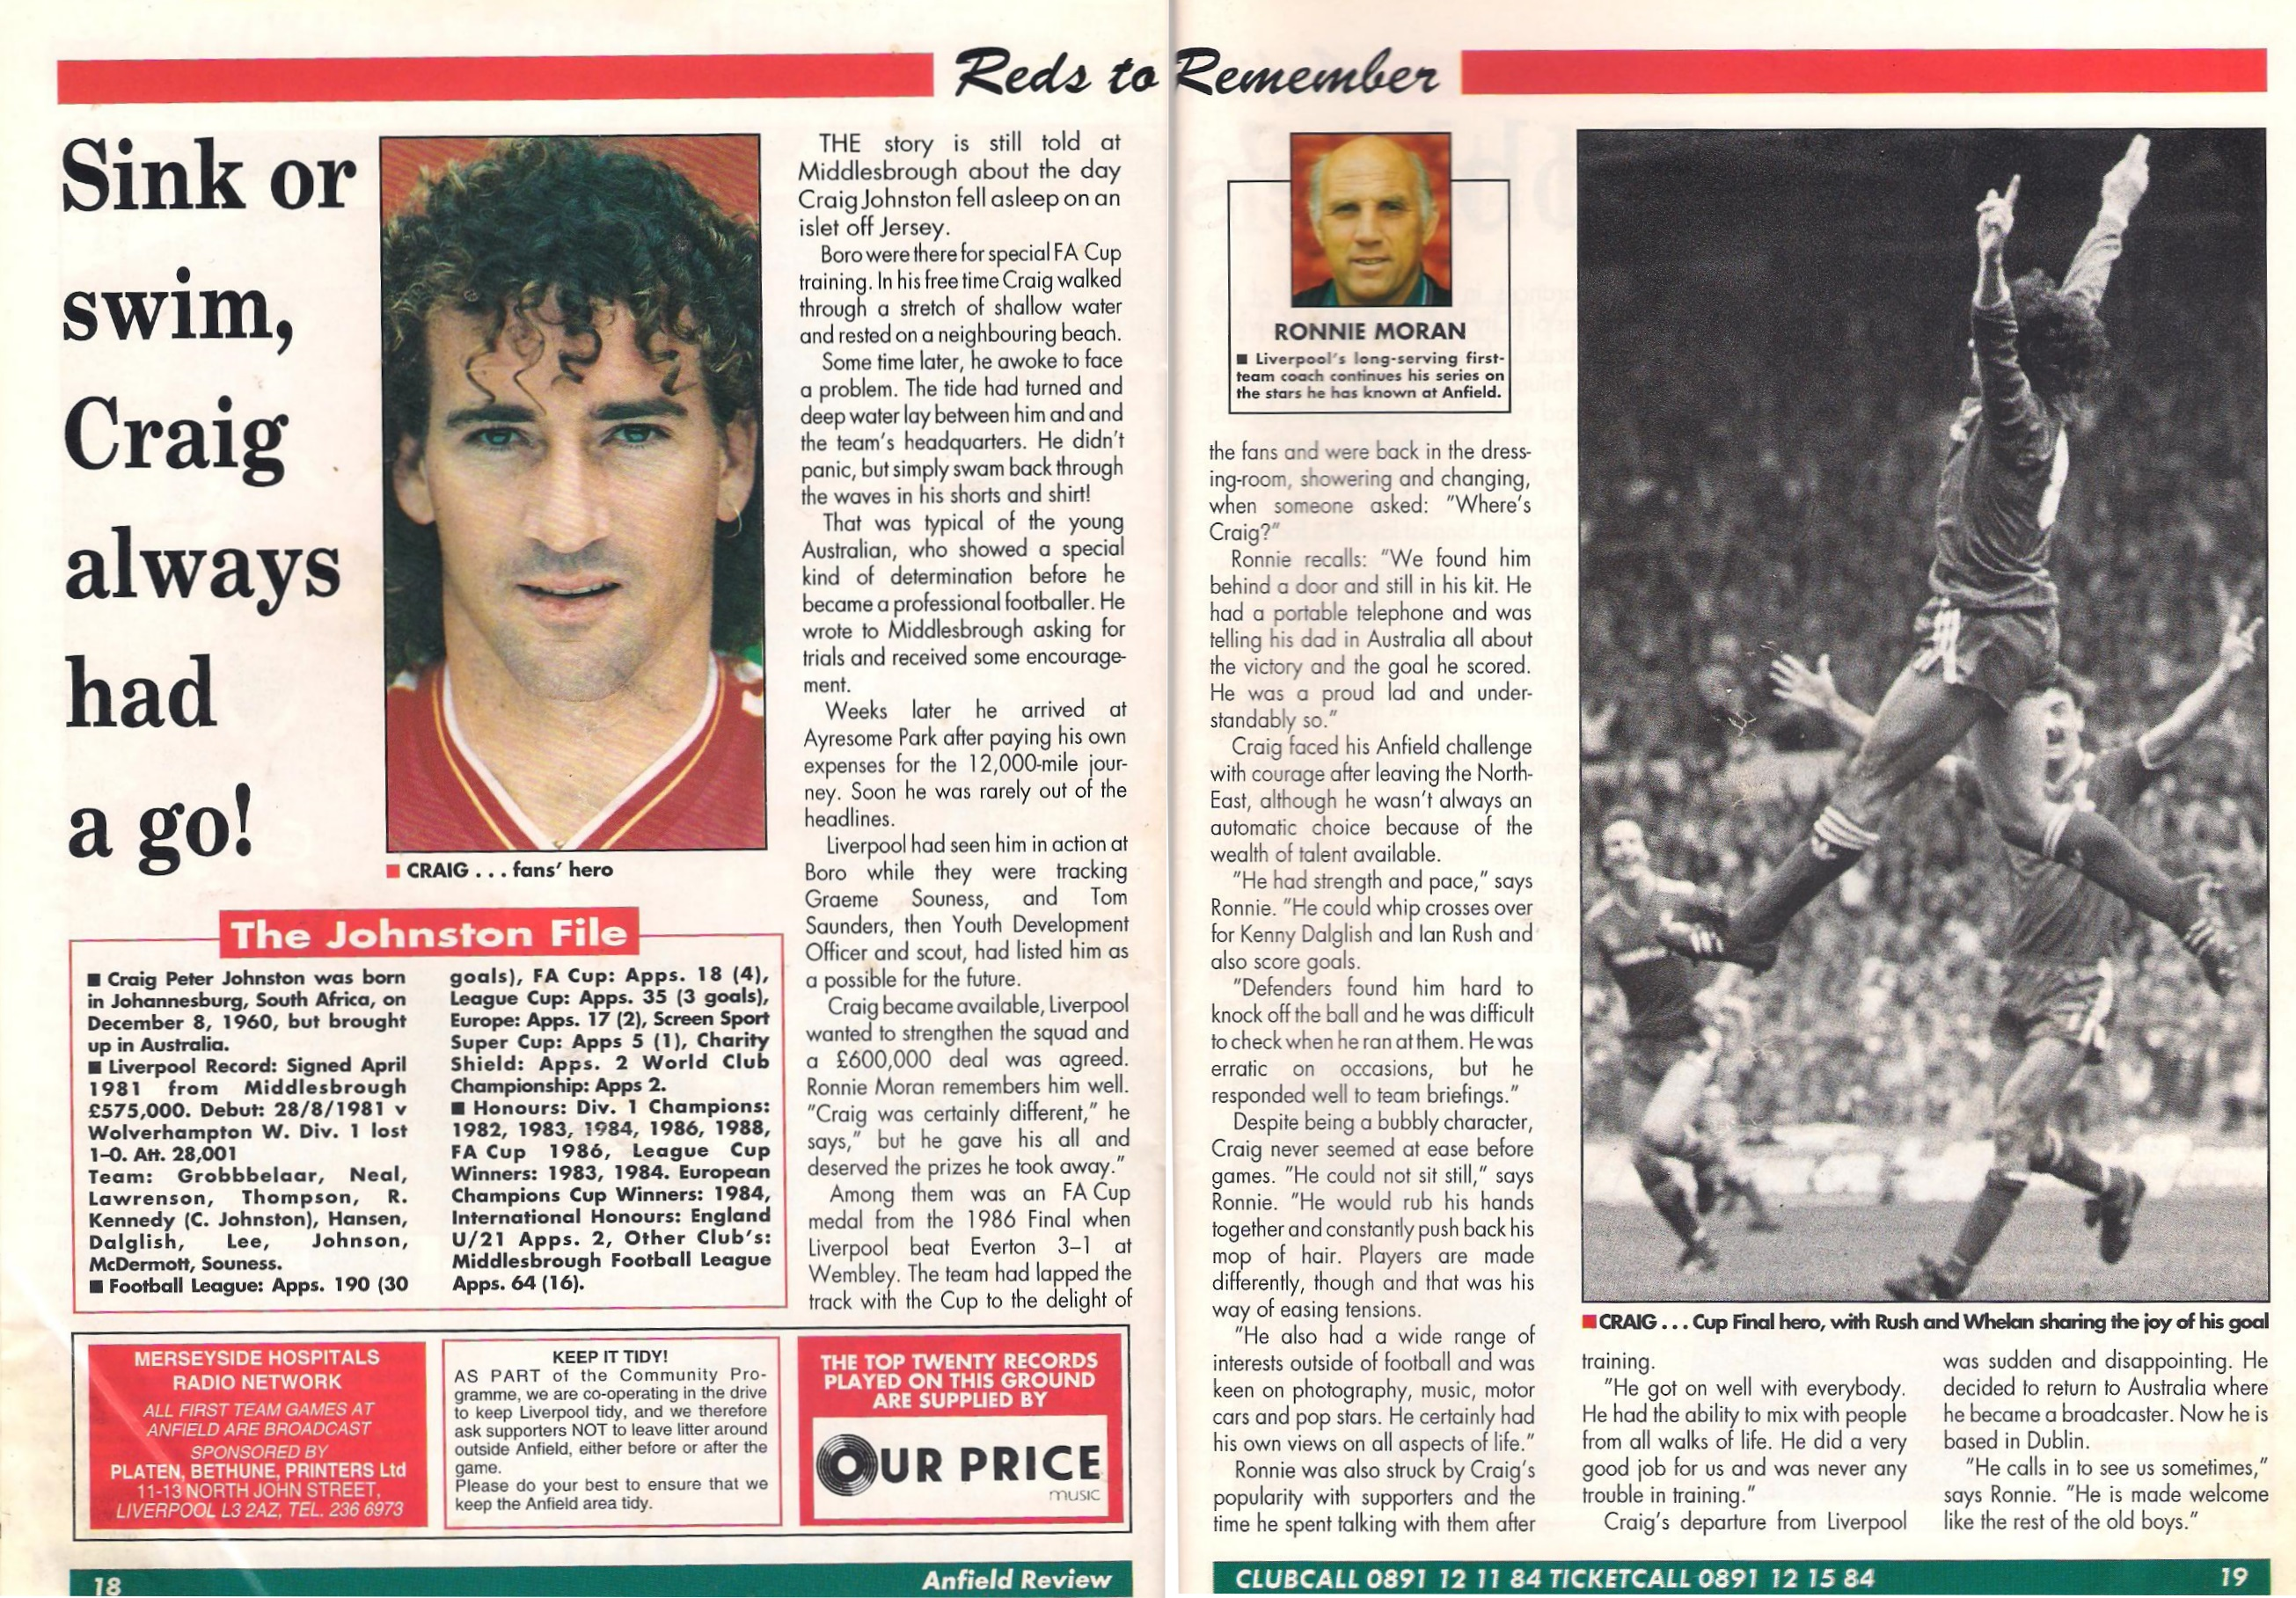 Reds to remember - Craig Johnston from Anfield Review